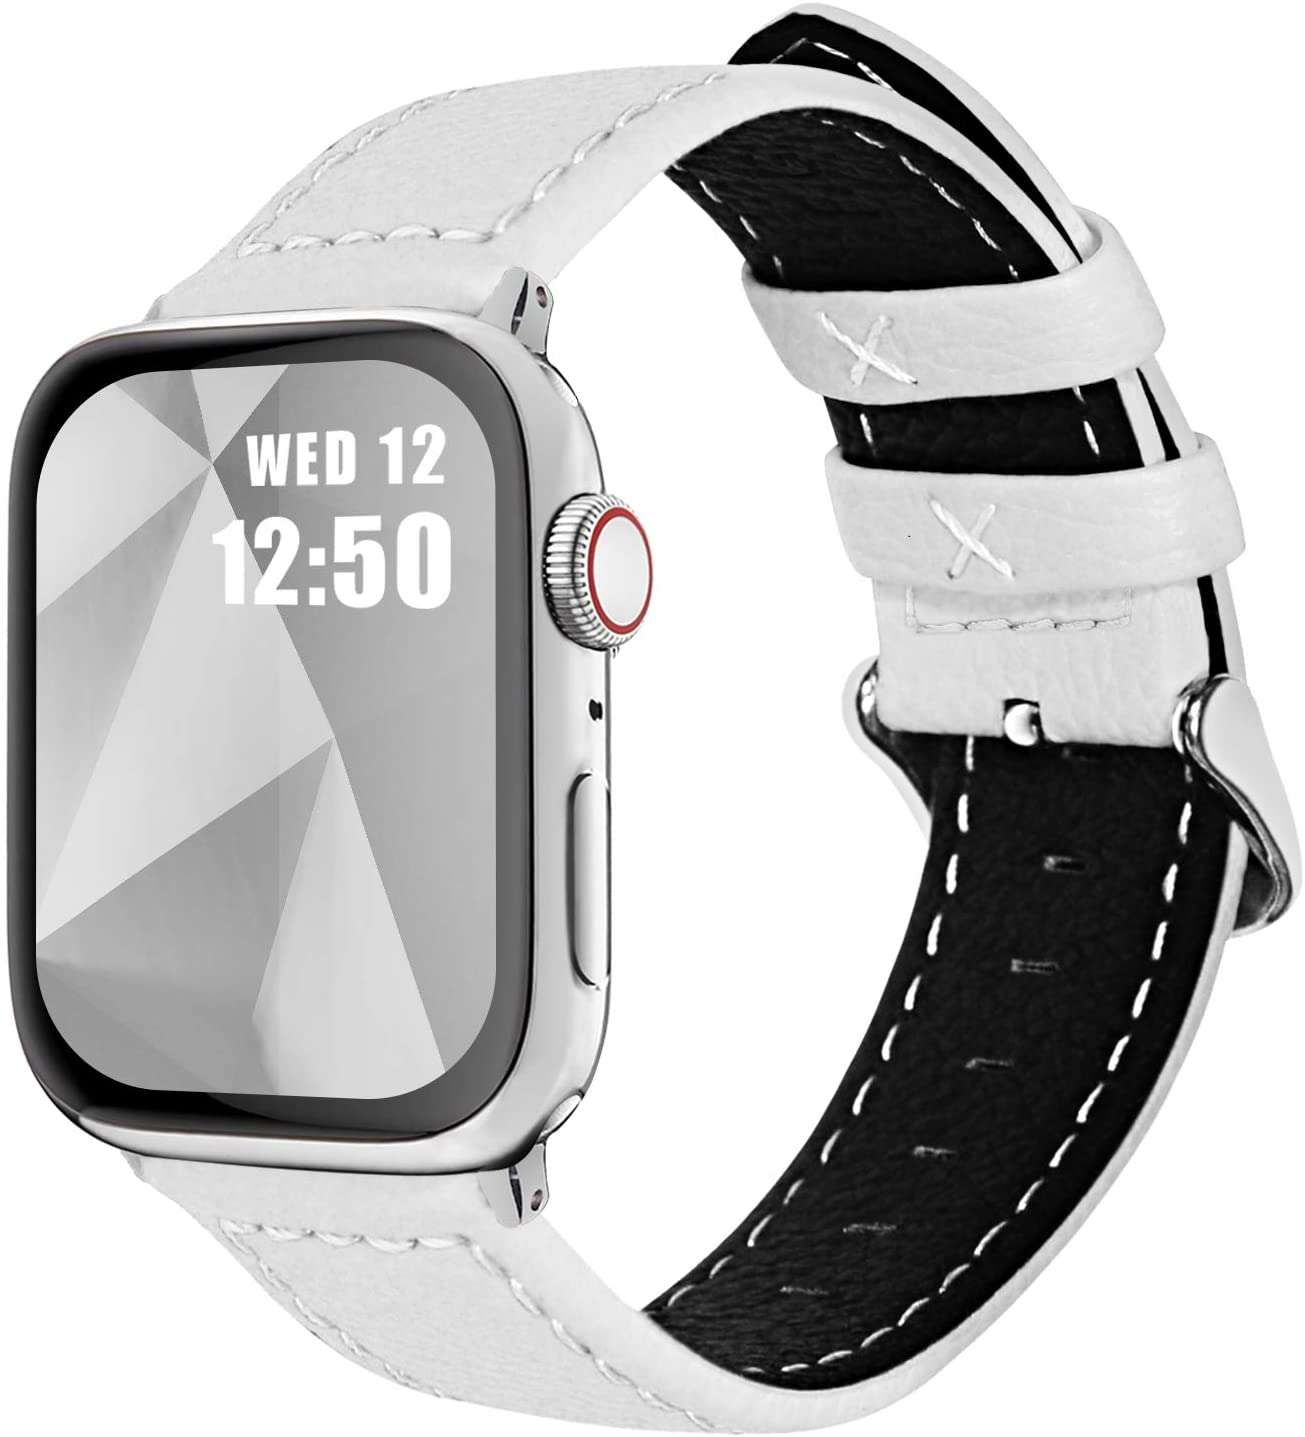 Fullmosa Compatible Apple Watch Band Leather 38mm 40mm 44mm 42mm for iWatch SE & Series 6/5/4/3/2/1,38mm/40mm White + Silver Buckle